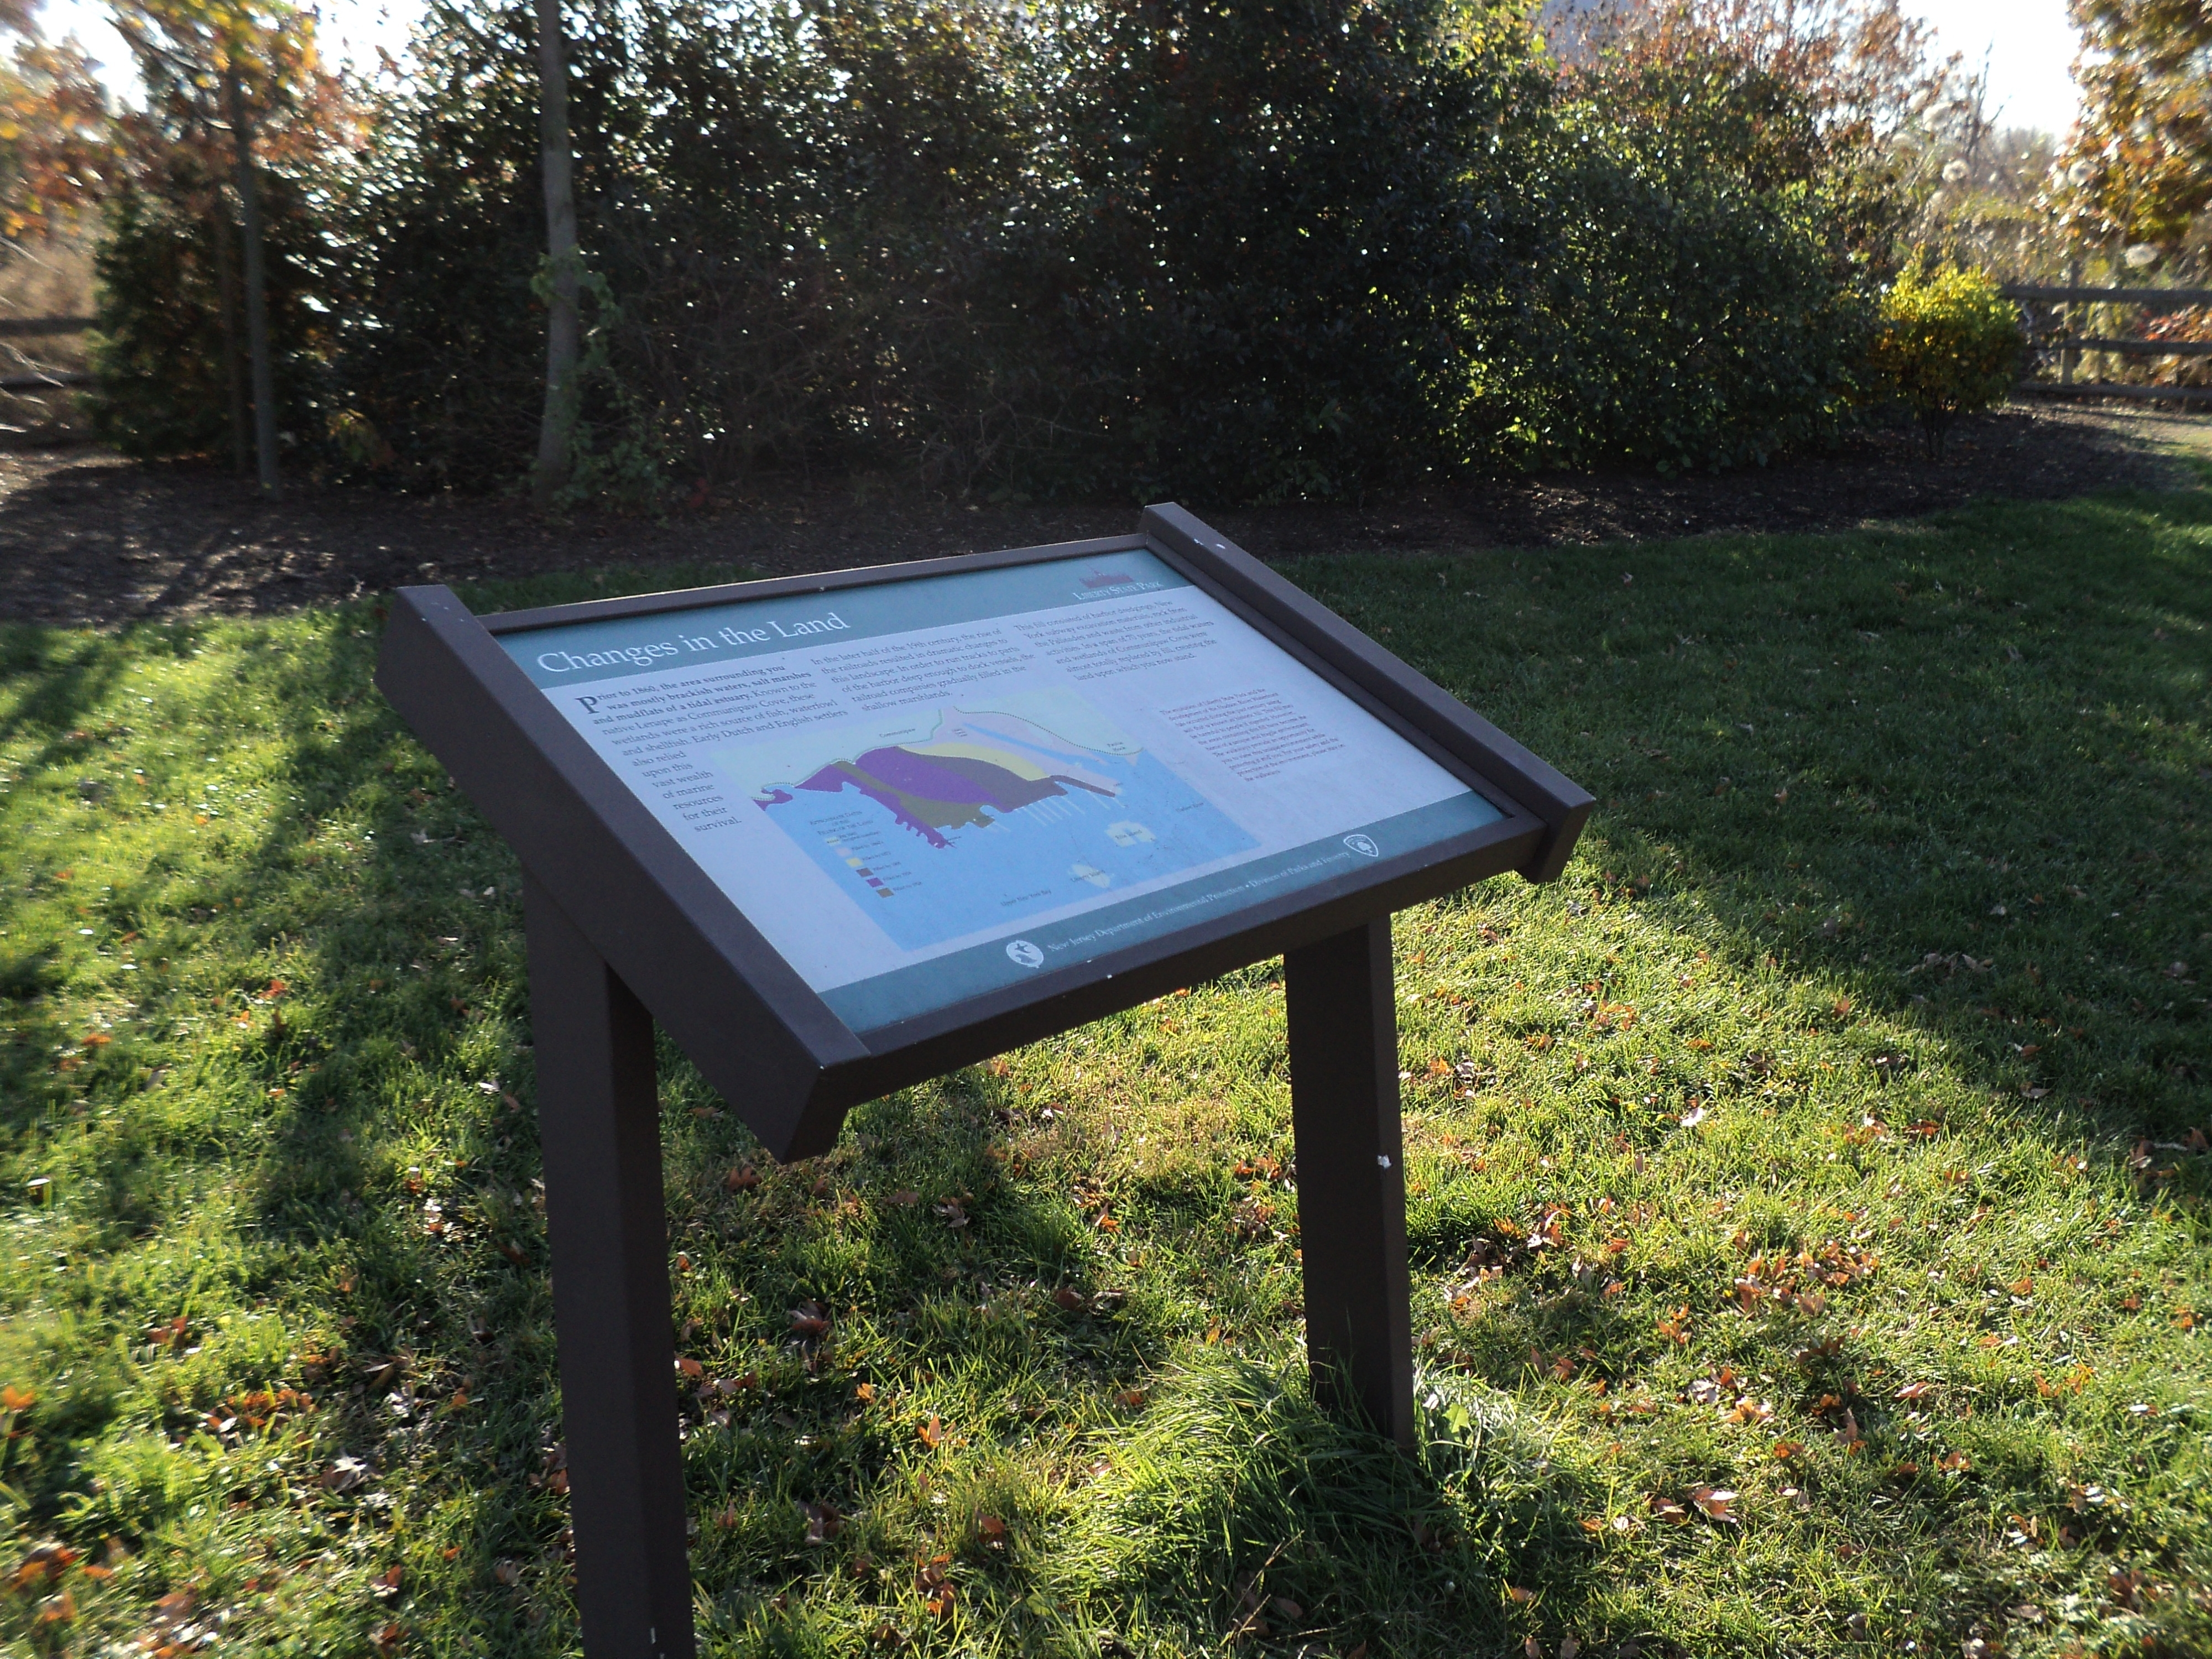 Changes in the Land Marker